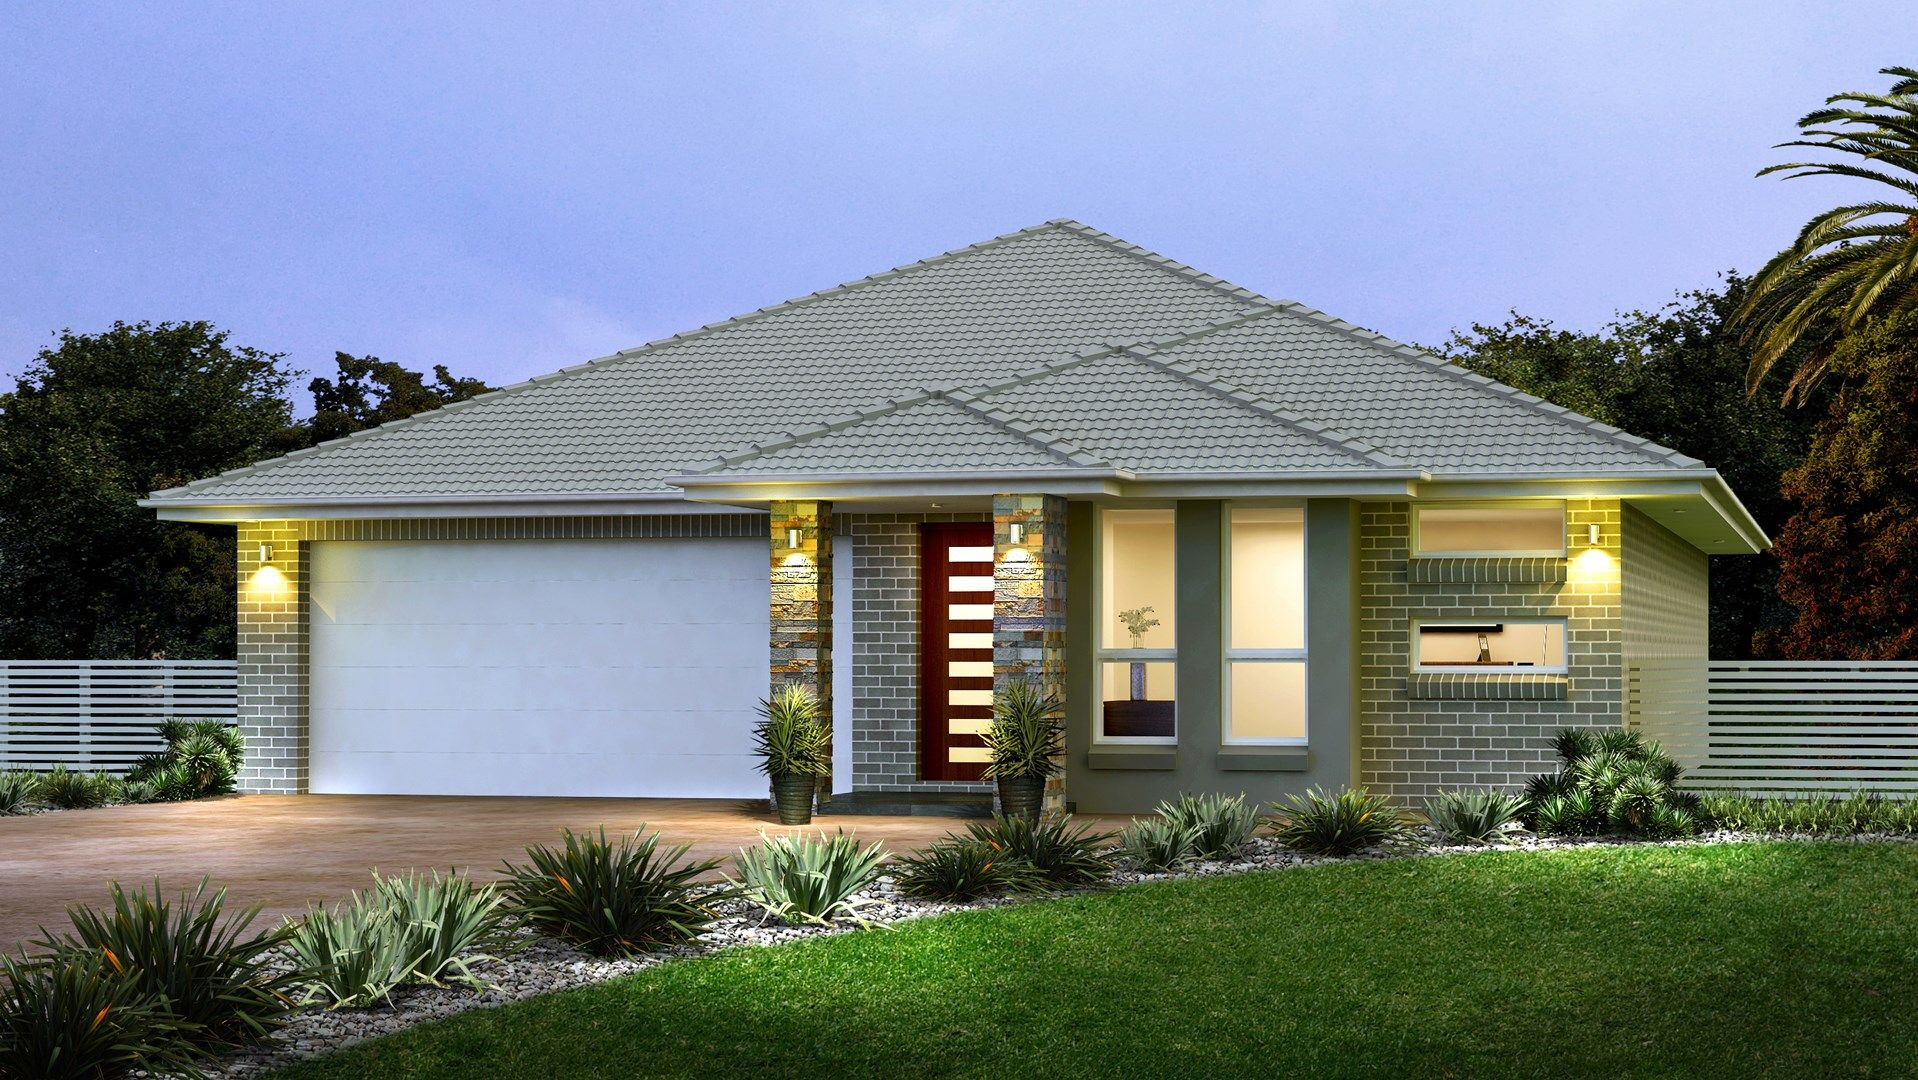 Lot 118 Changsha Road, Edmondson Park NSW 2174, Image 0